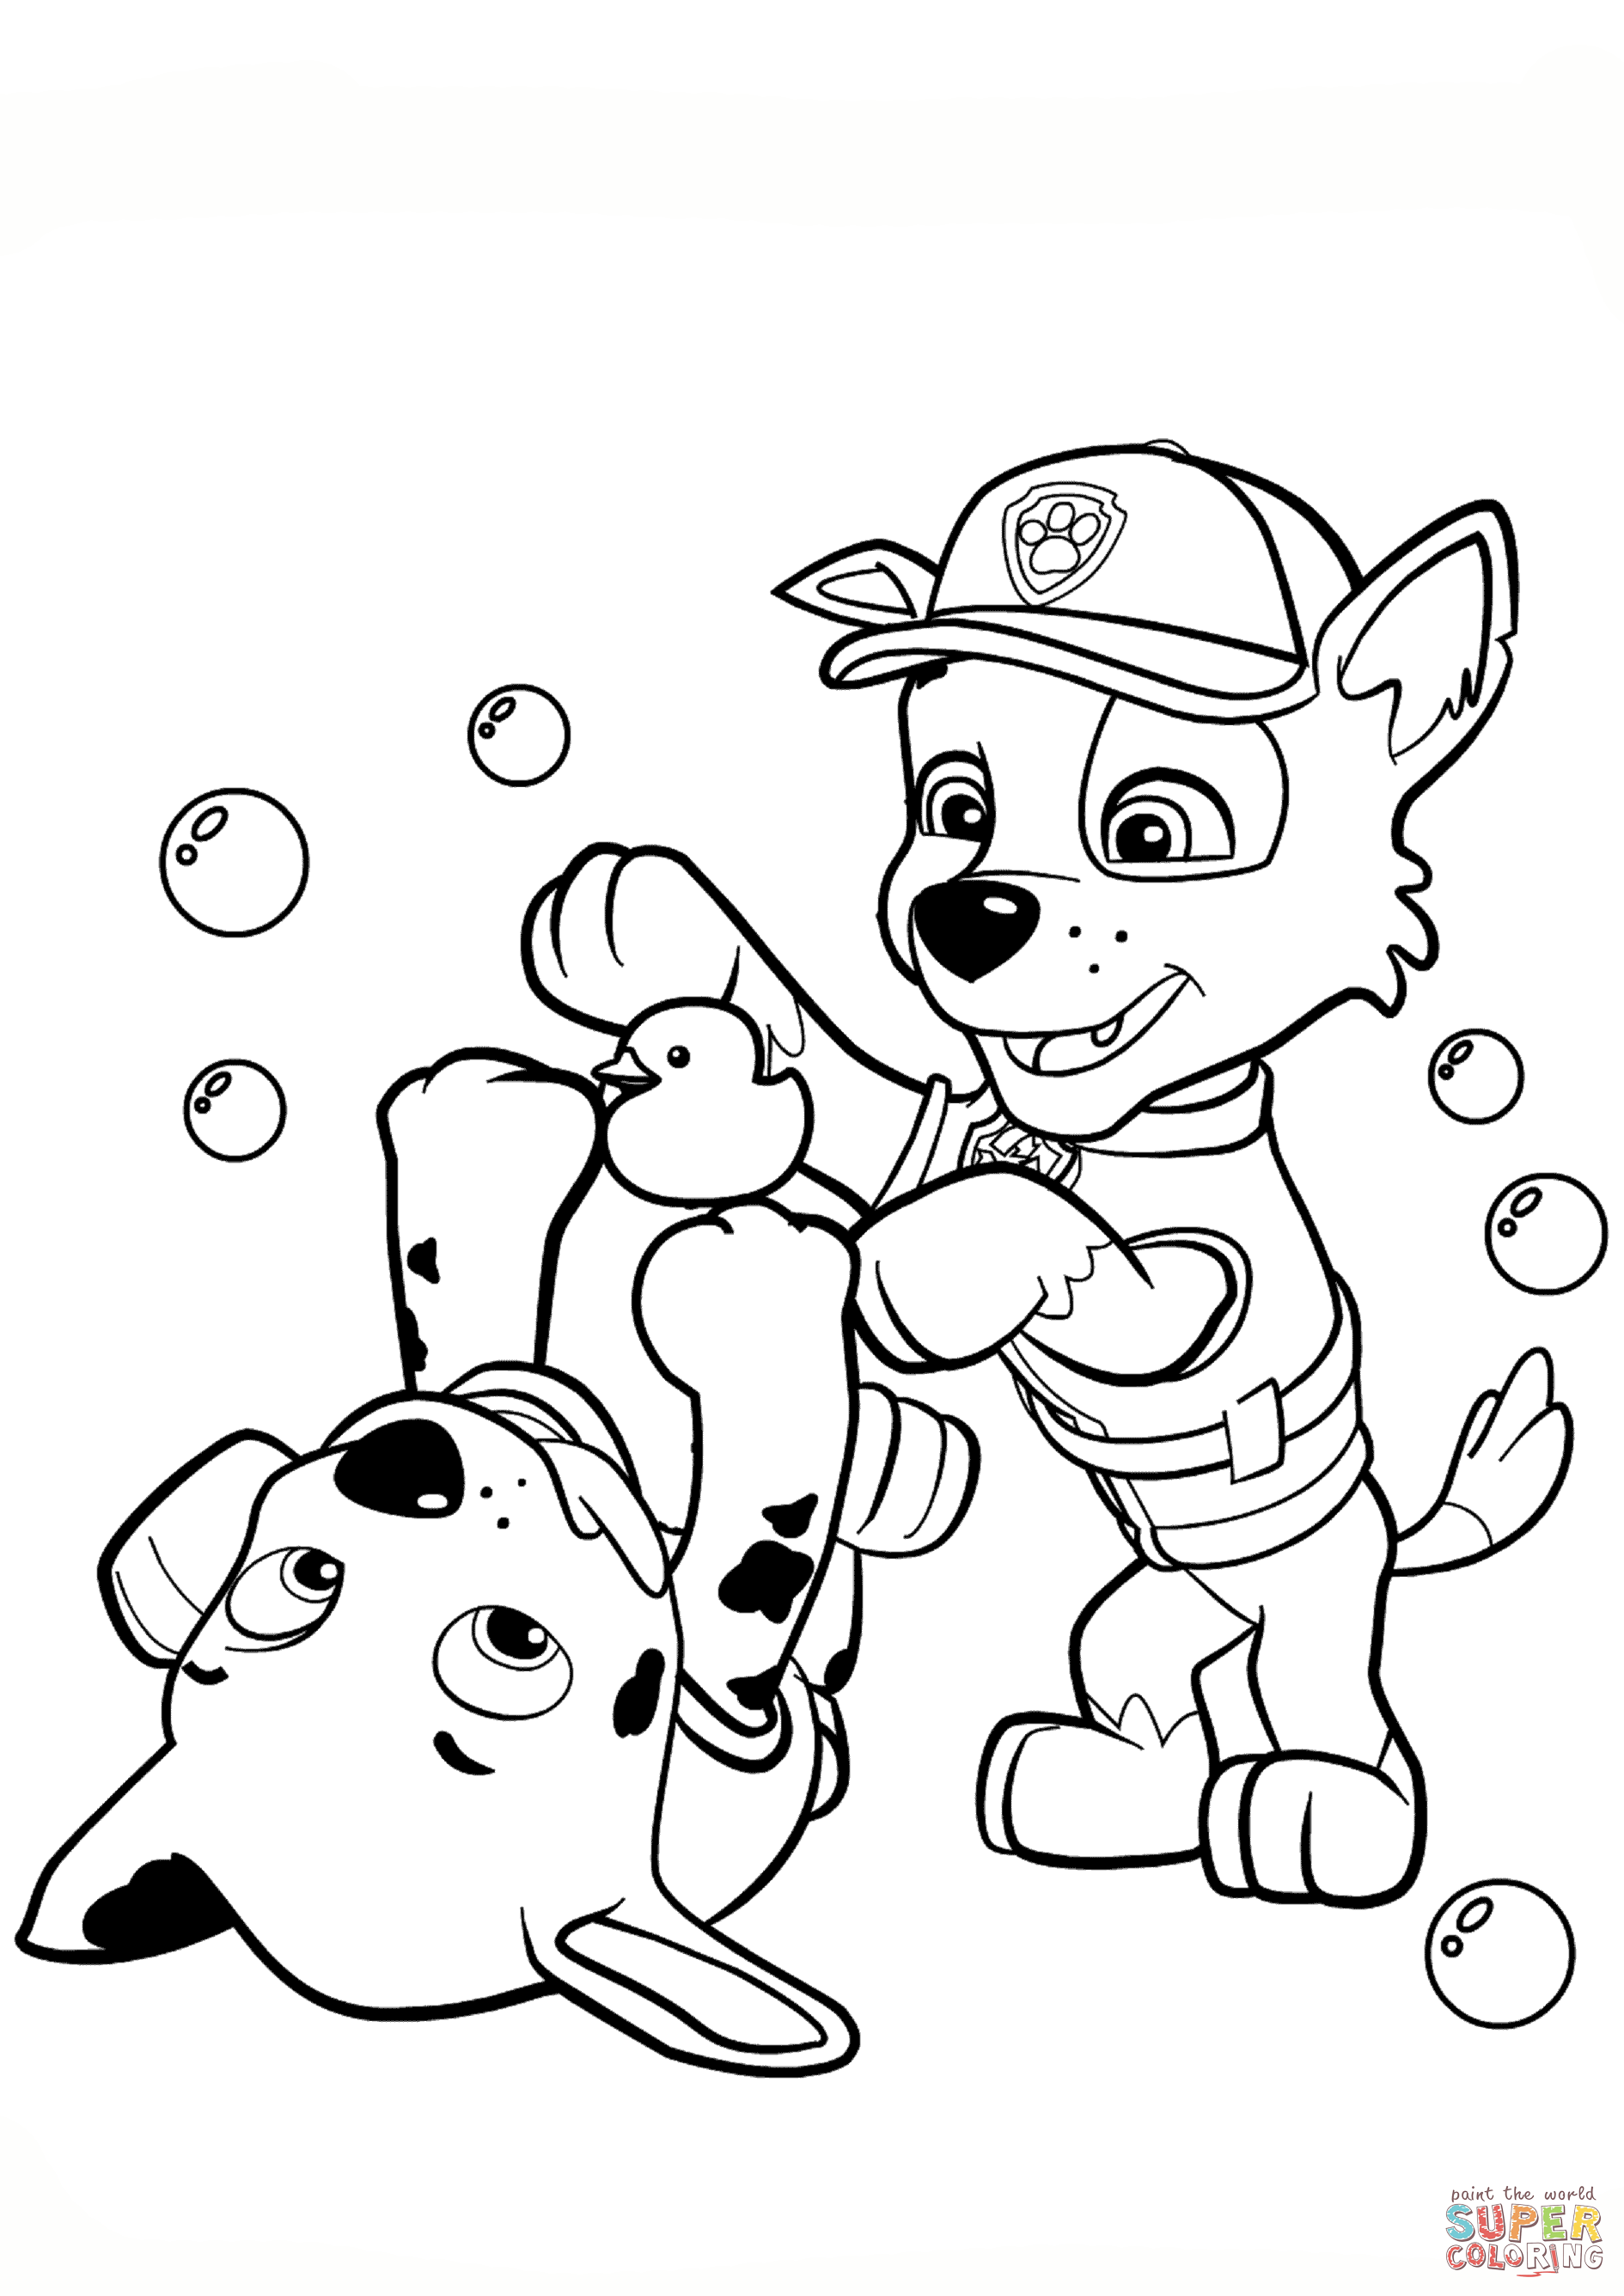 Paw Patrol Rocky And Marshall Coloring Page | Free ...